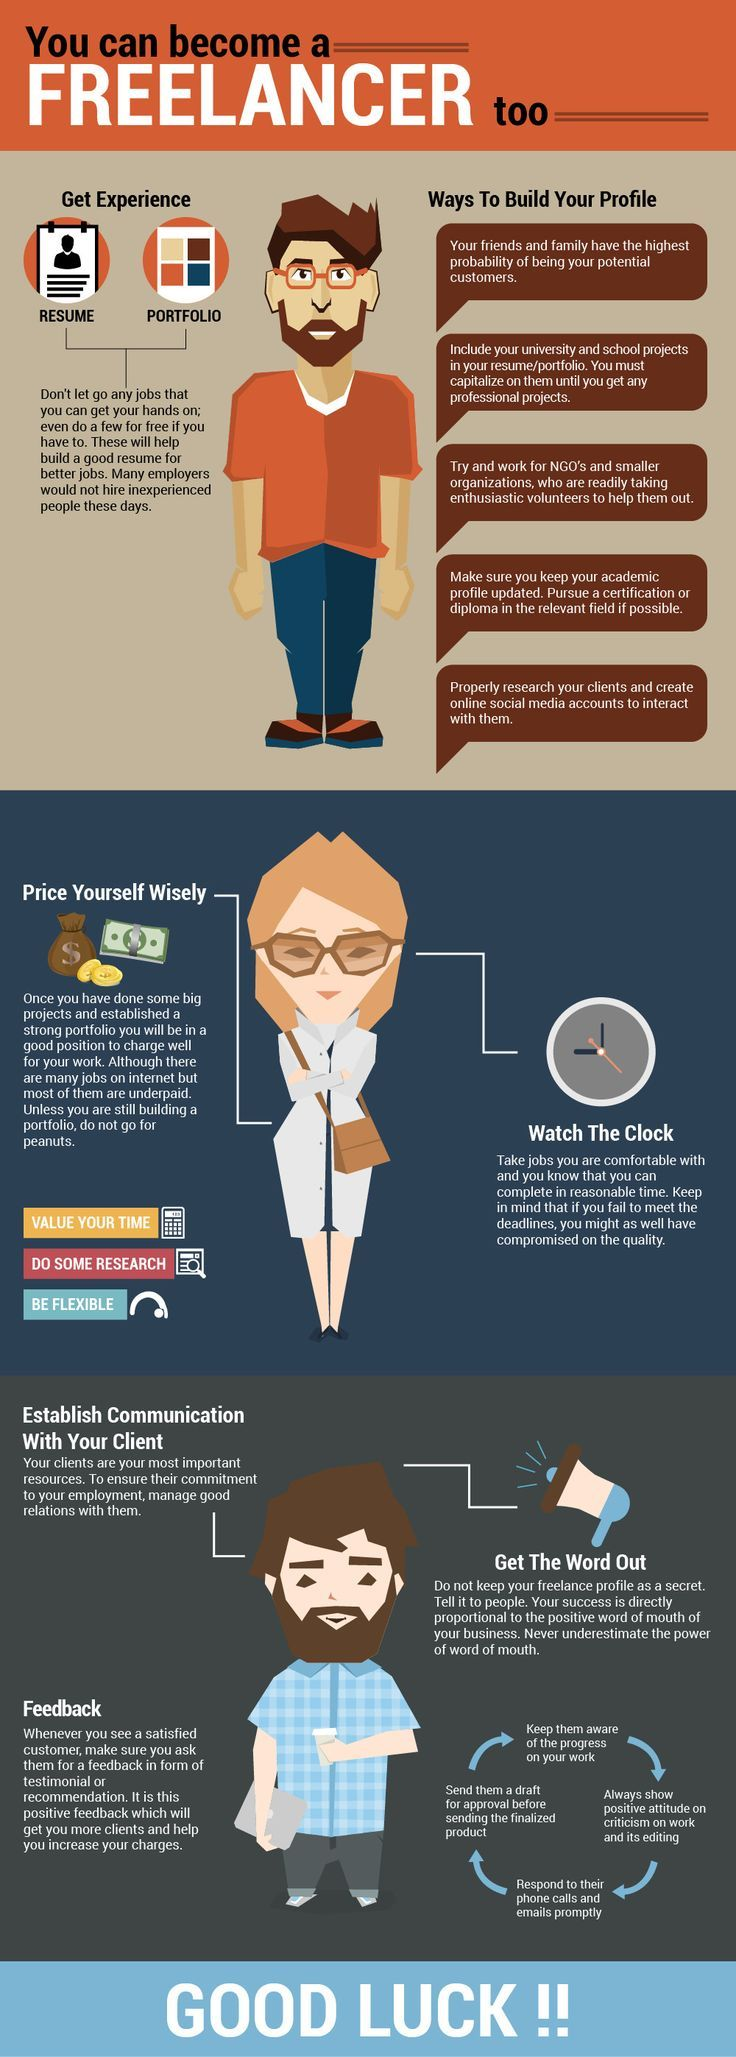 You Can Become a Freelancer too infographic